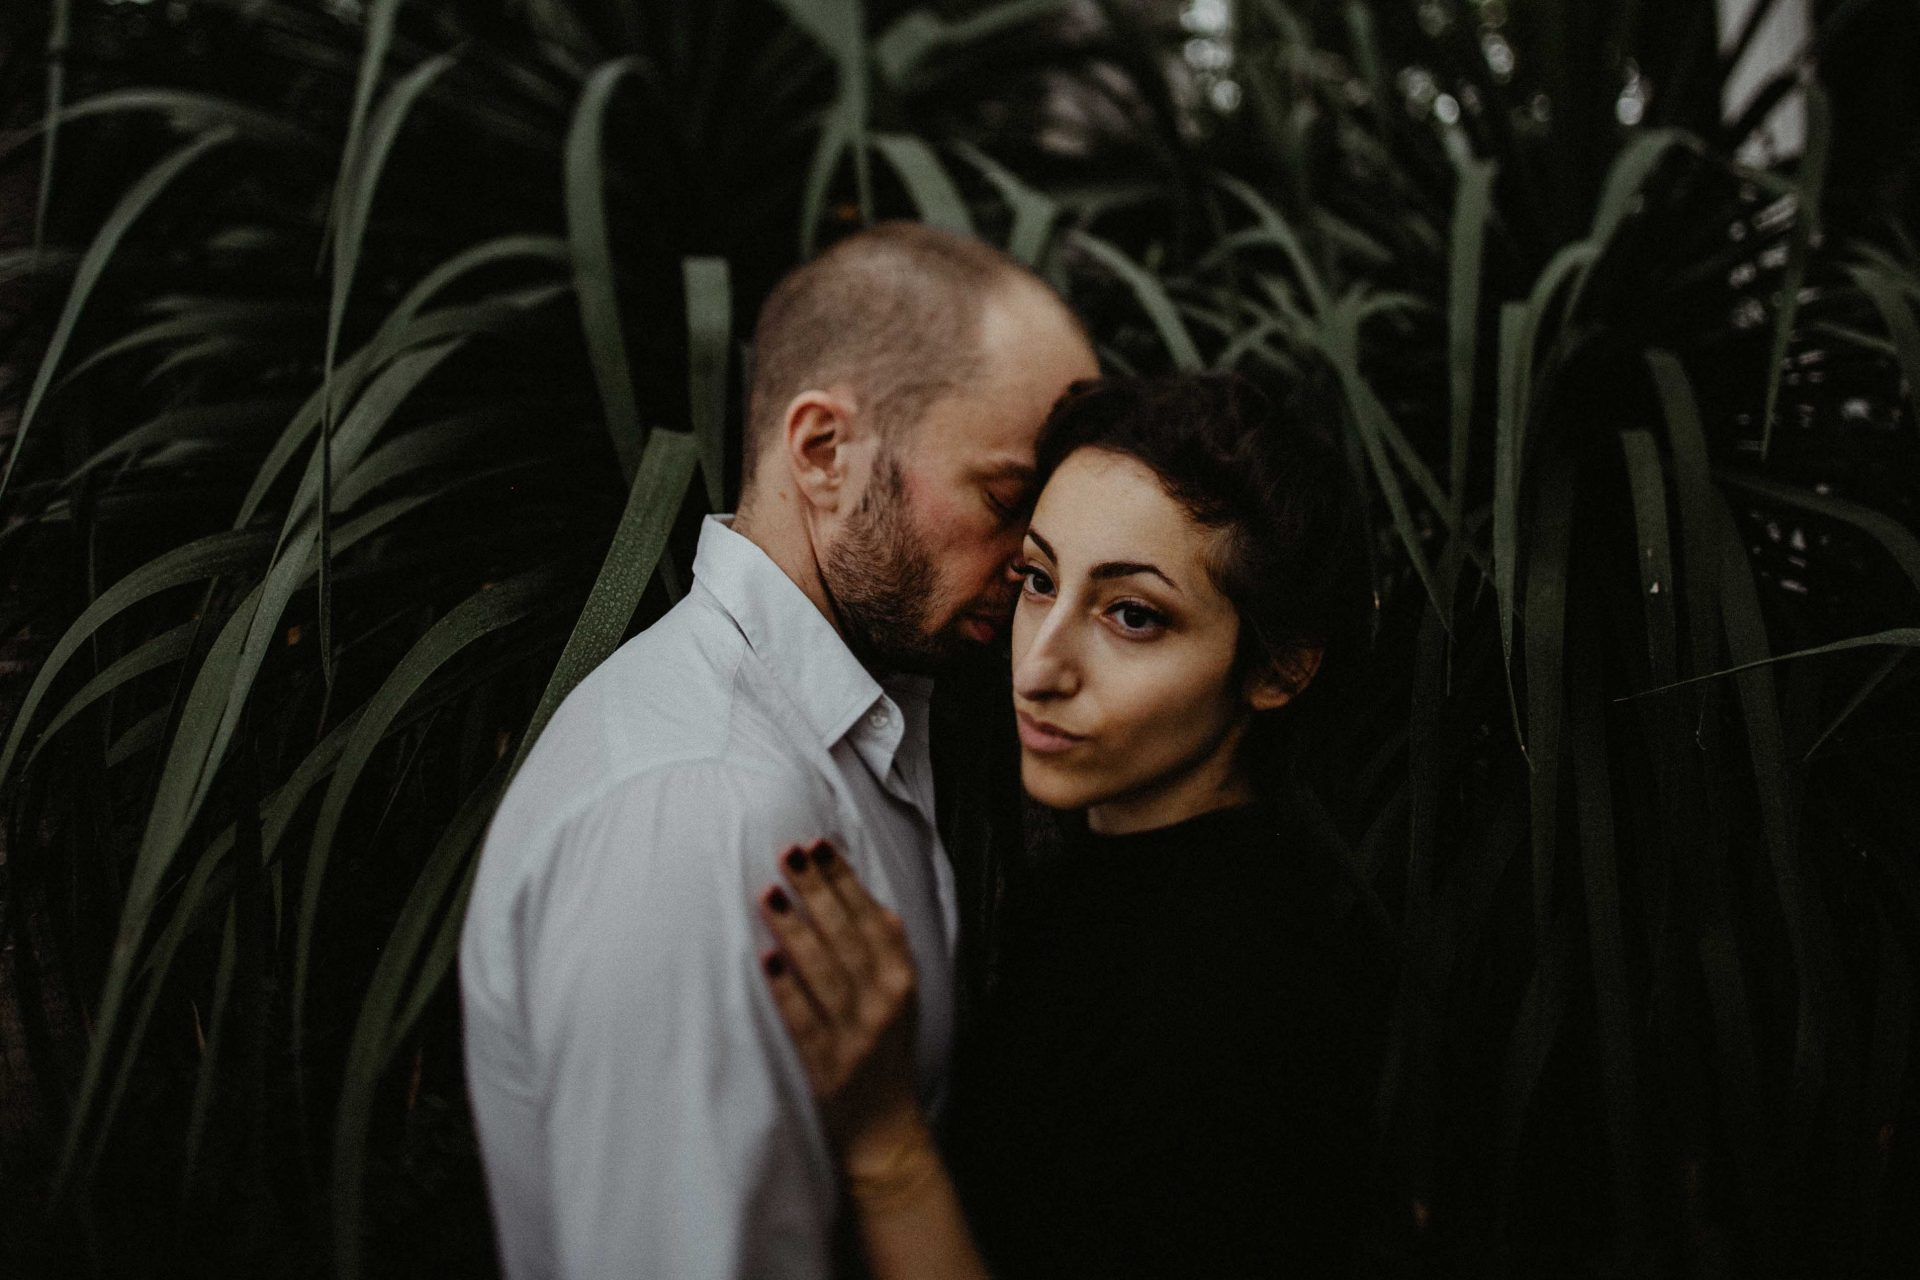 vienna engagement photographer